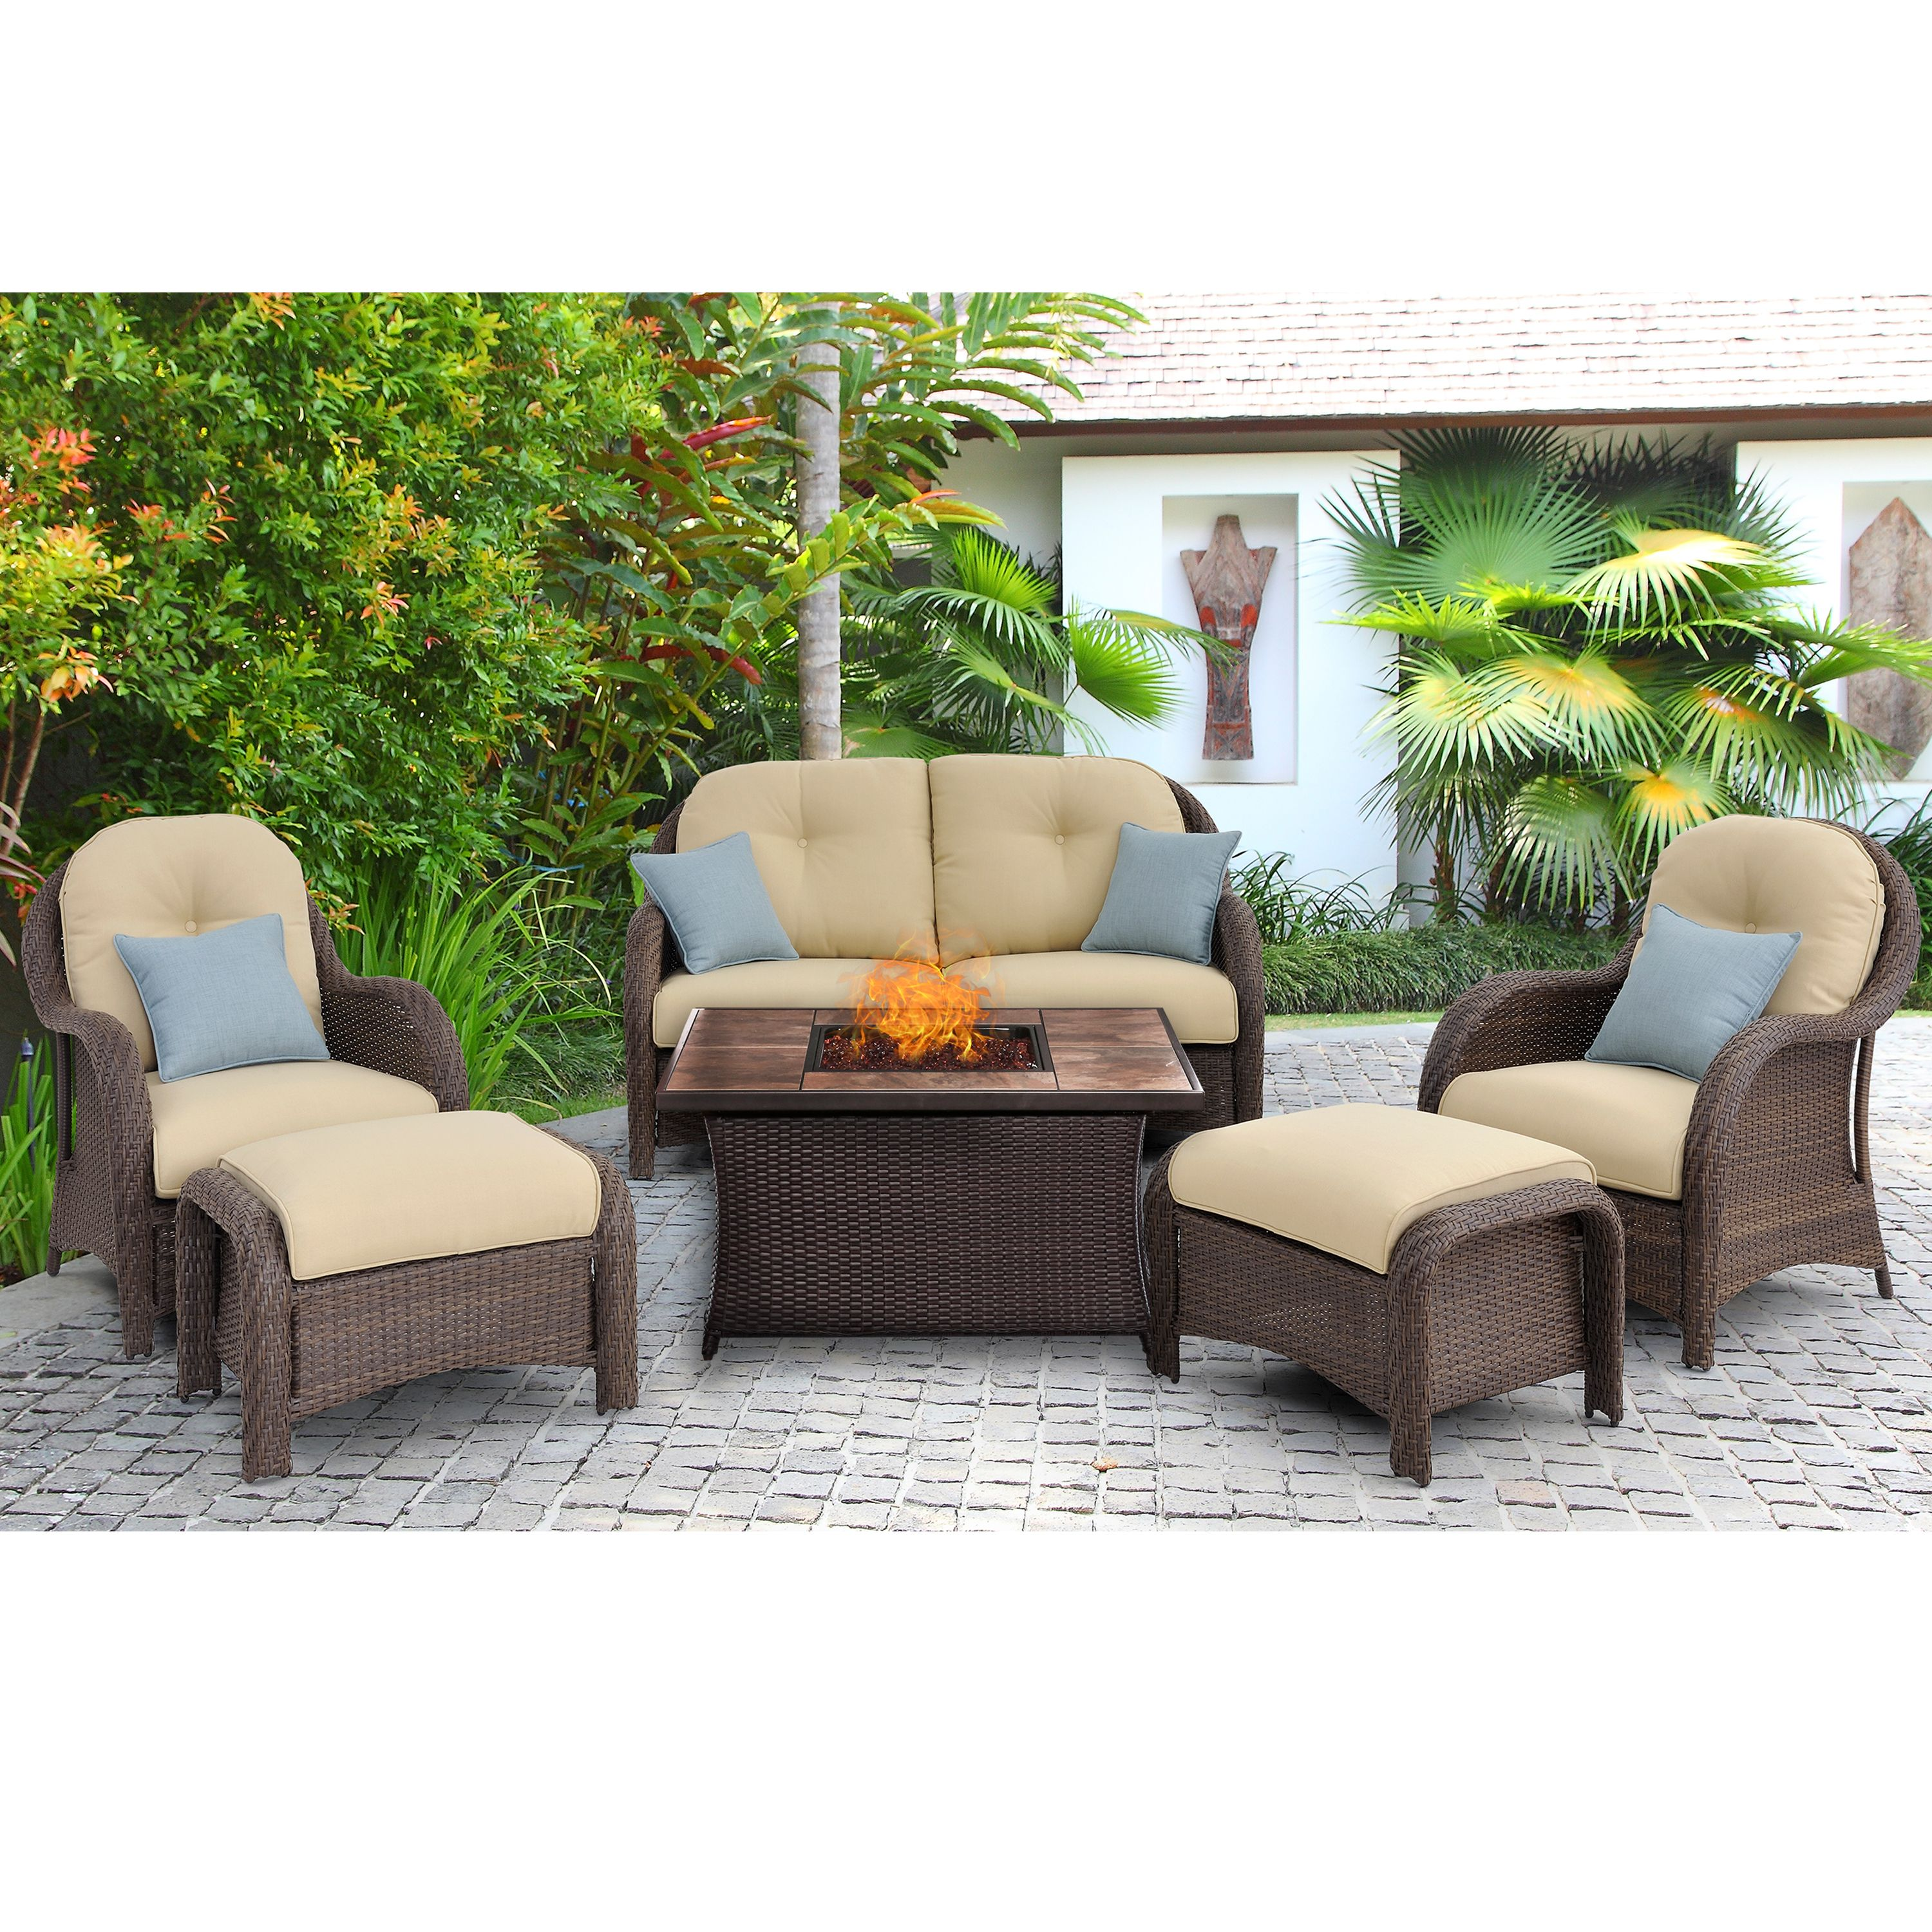 Hanover Newport 6 Piece Woven Seating Set In Cream With Fire Pit